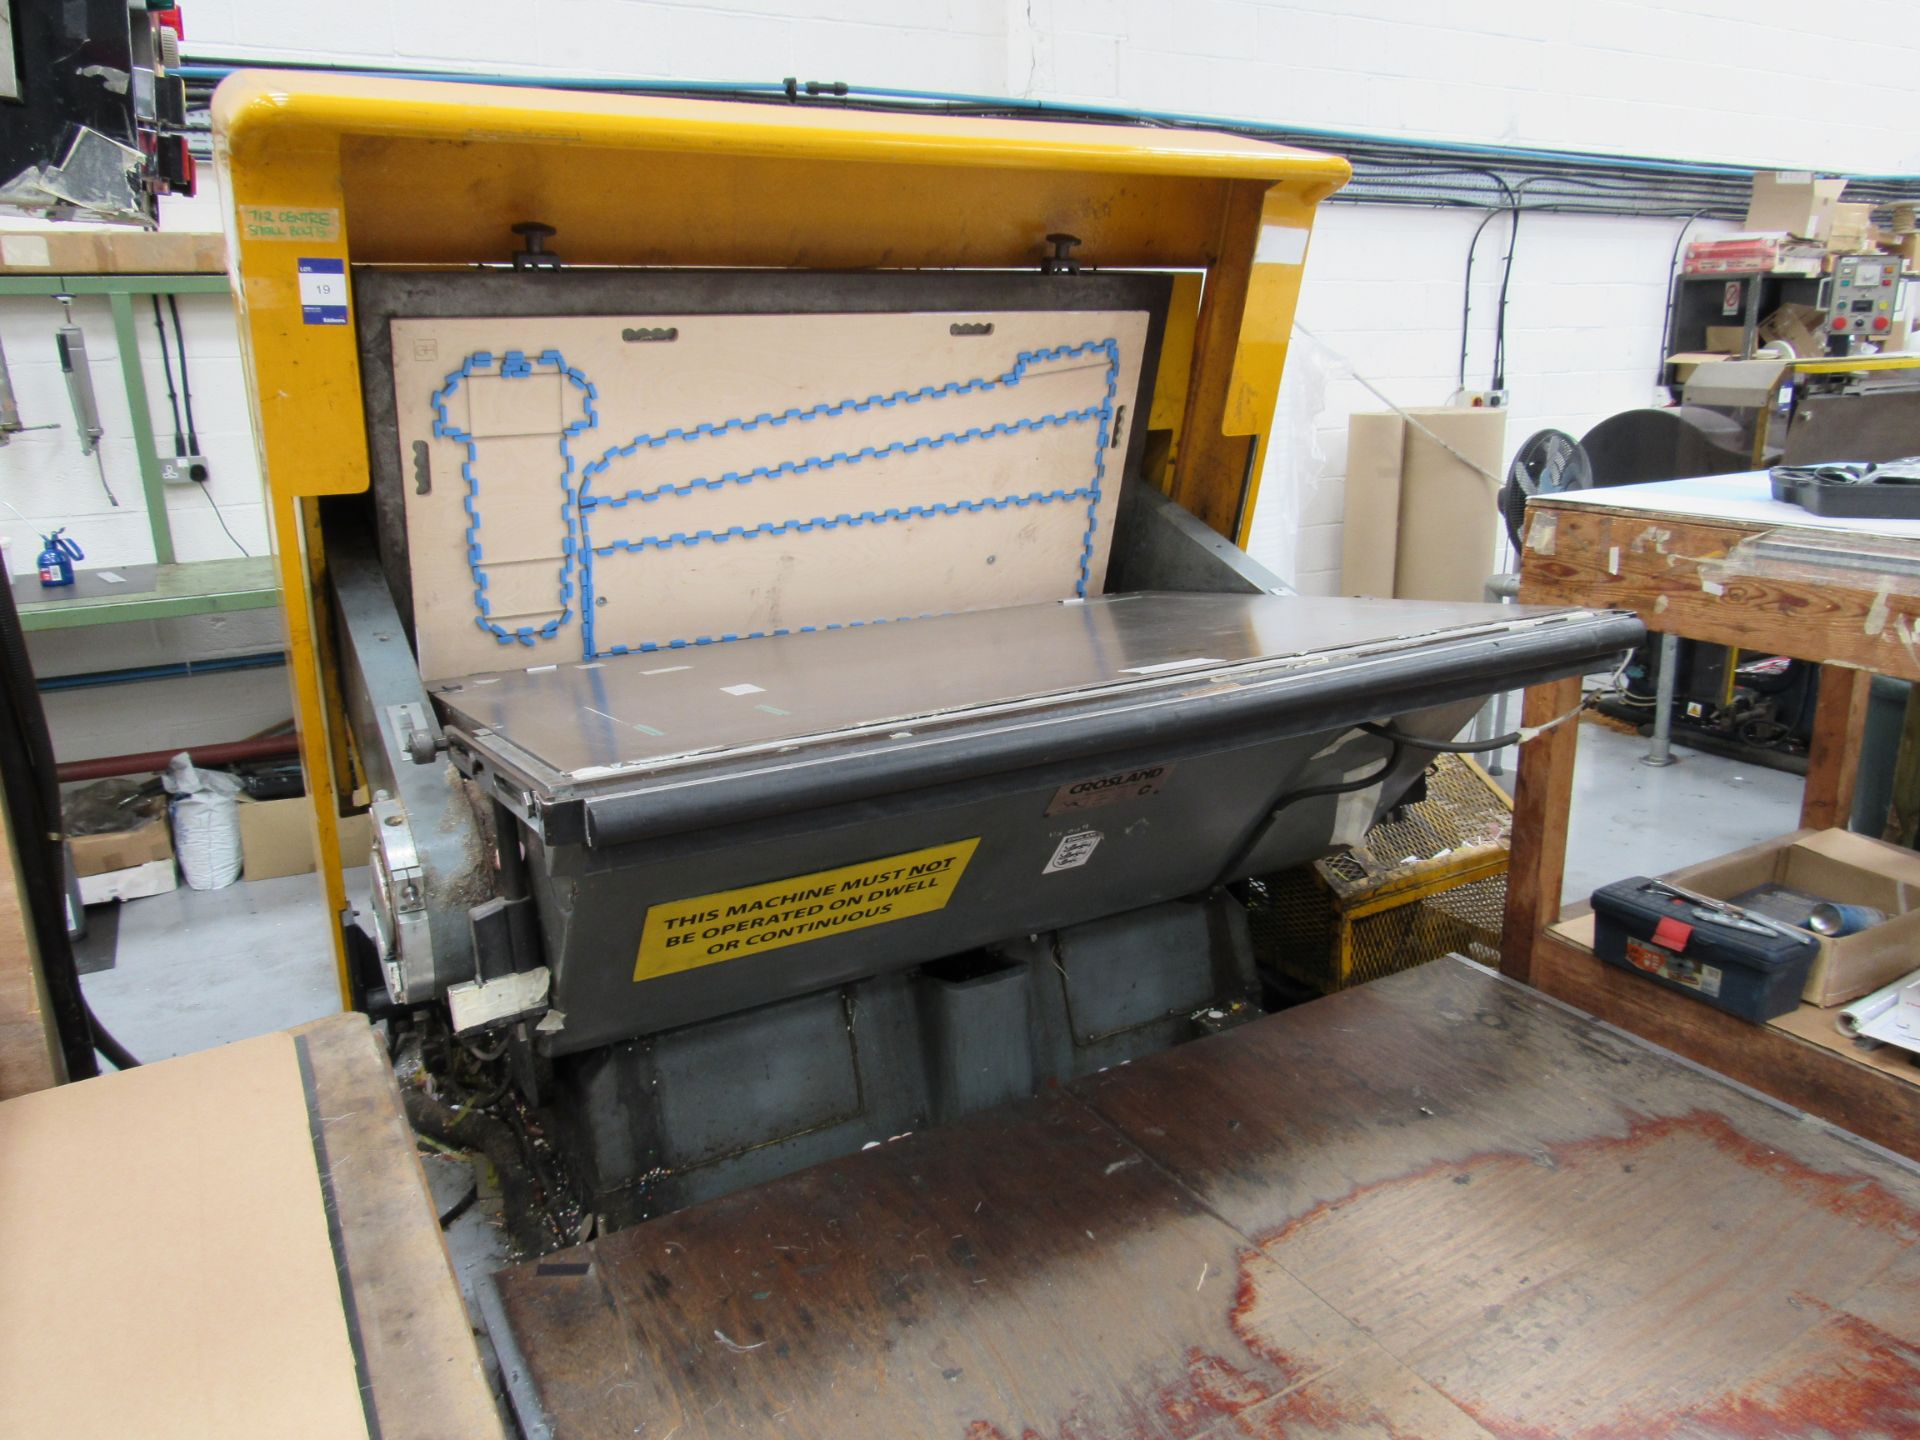 Avocet Crosland TVF 32 Cut and Crease Platen, 1690 x 1220mm, Serial Number 467/NH, Sept 1994